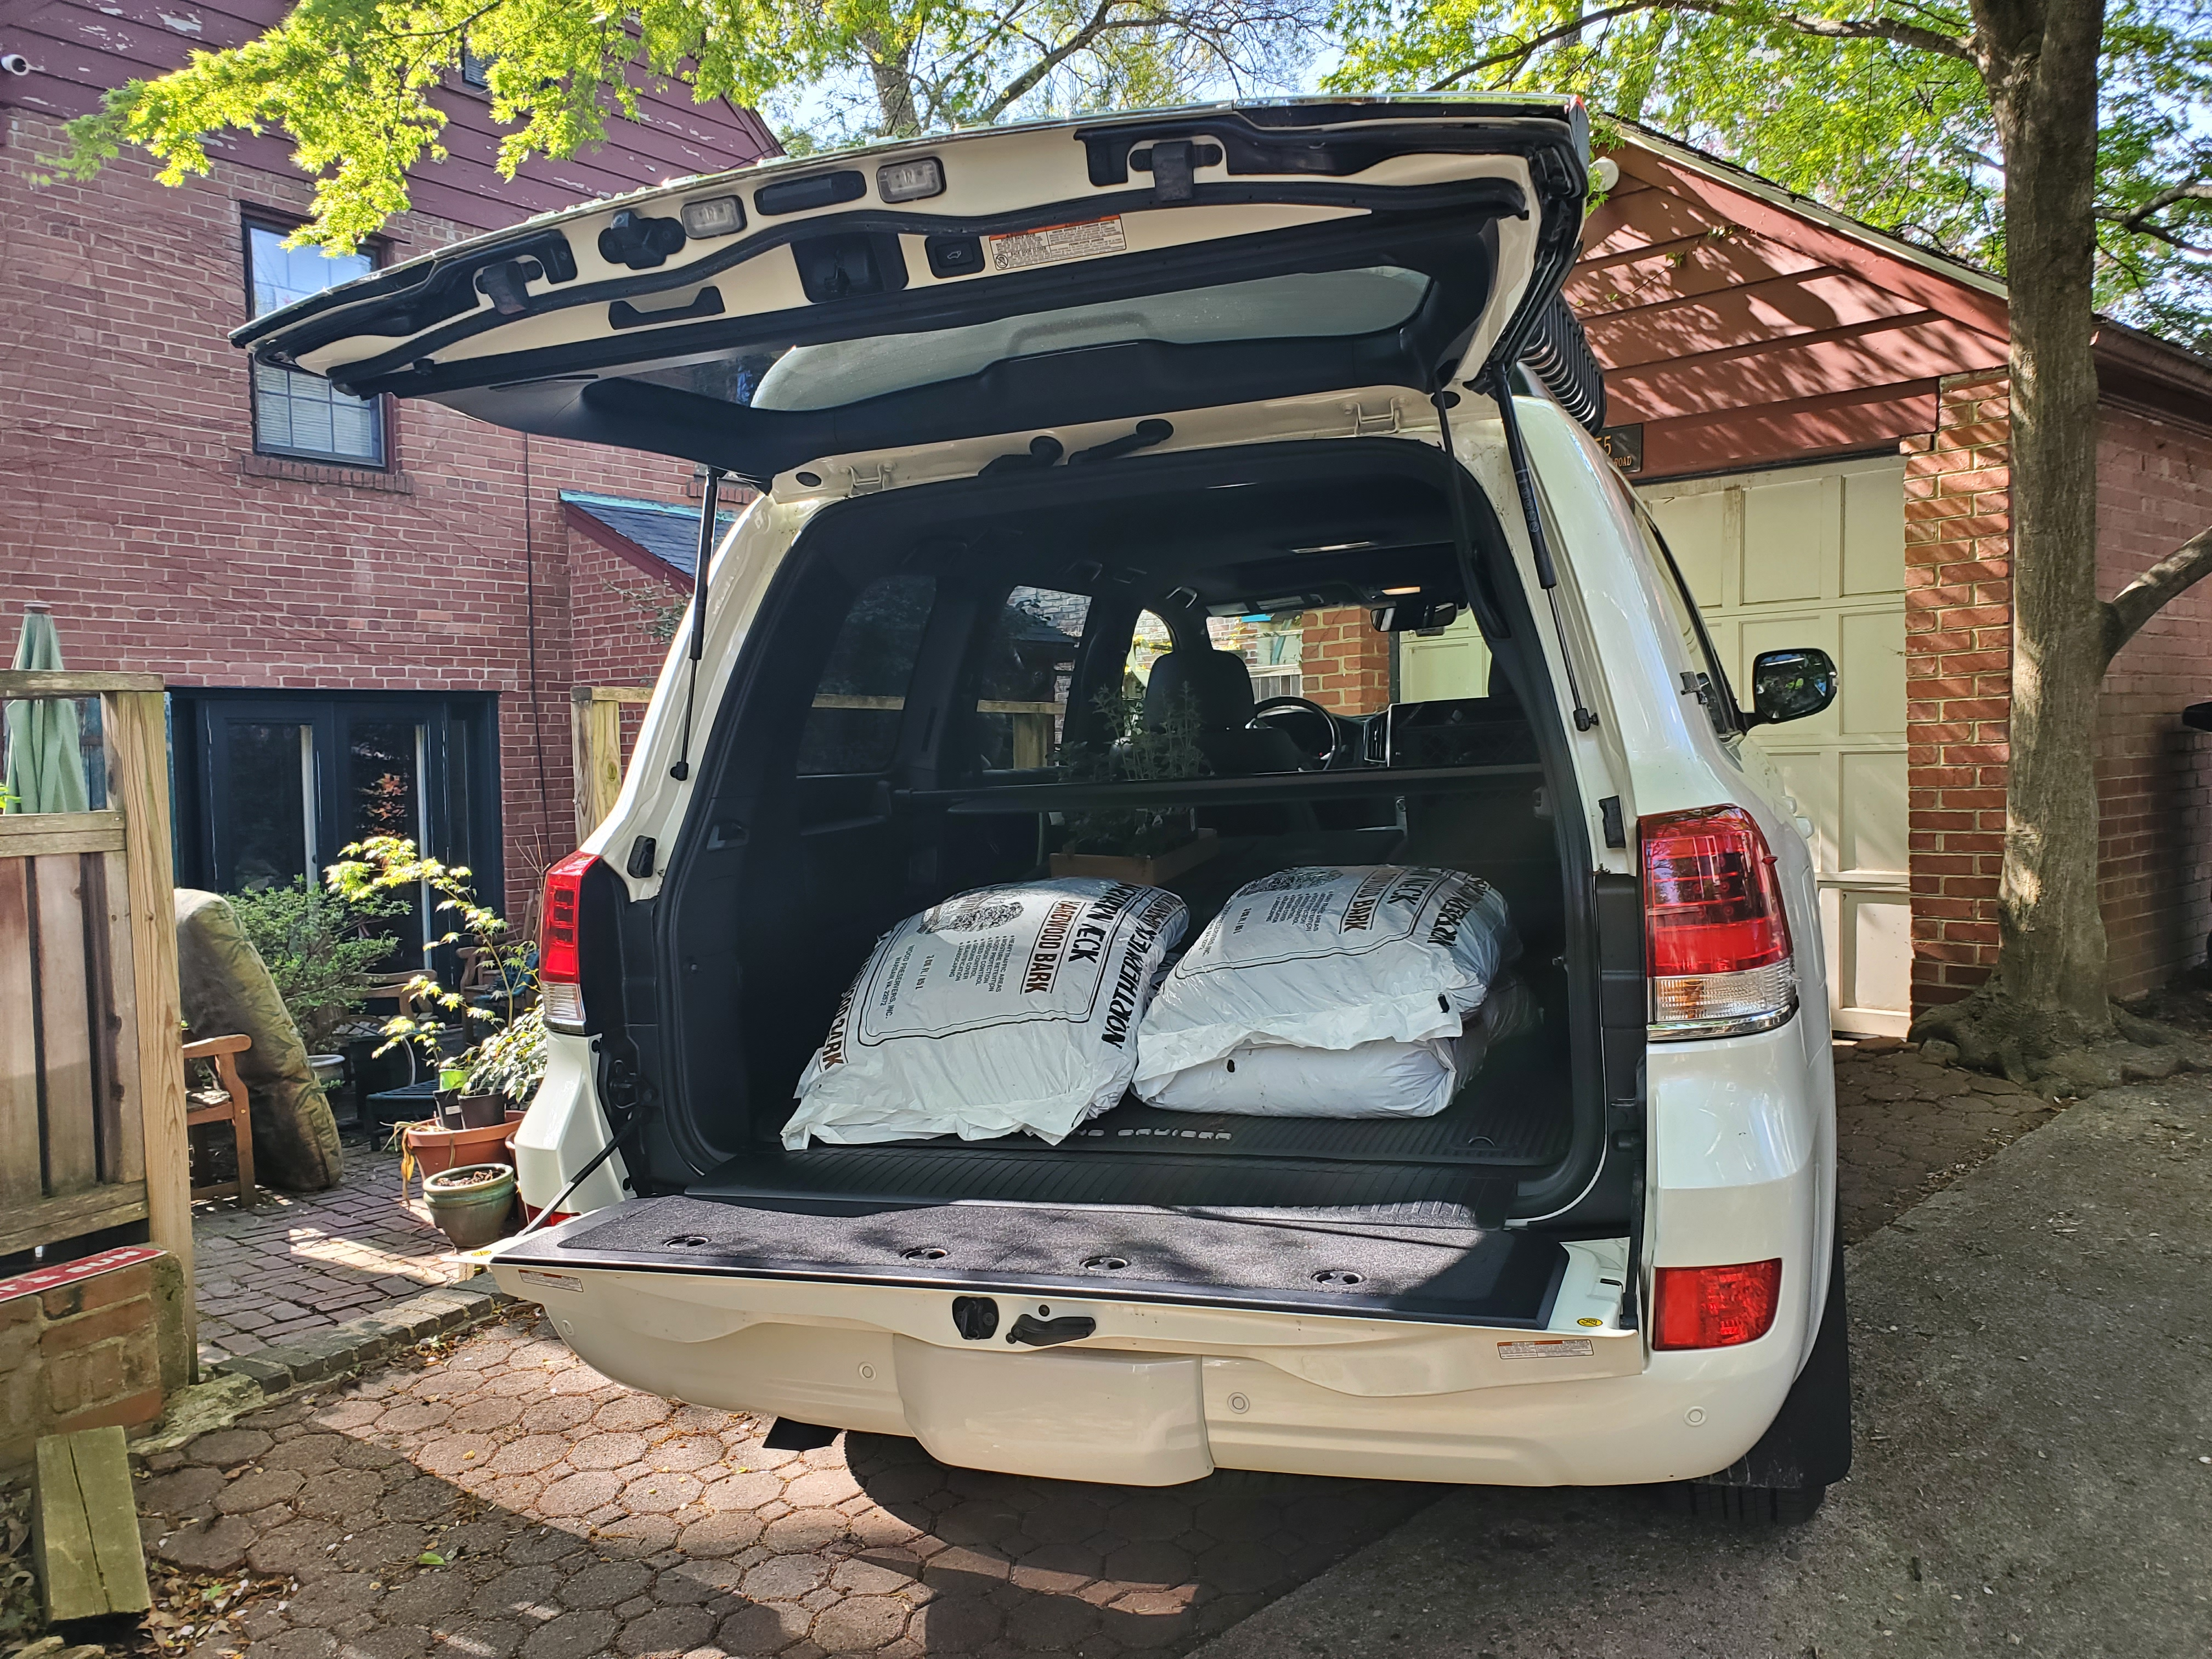 Land Cruiser's cargo area is large and quite useful